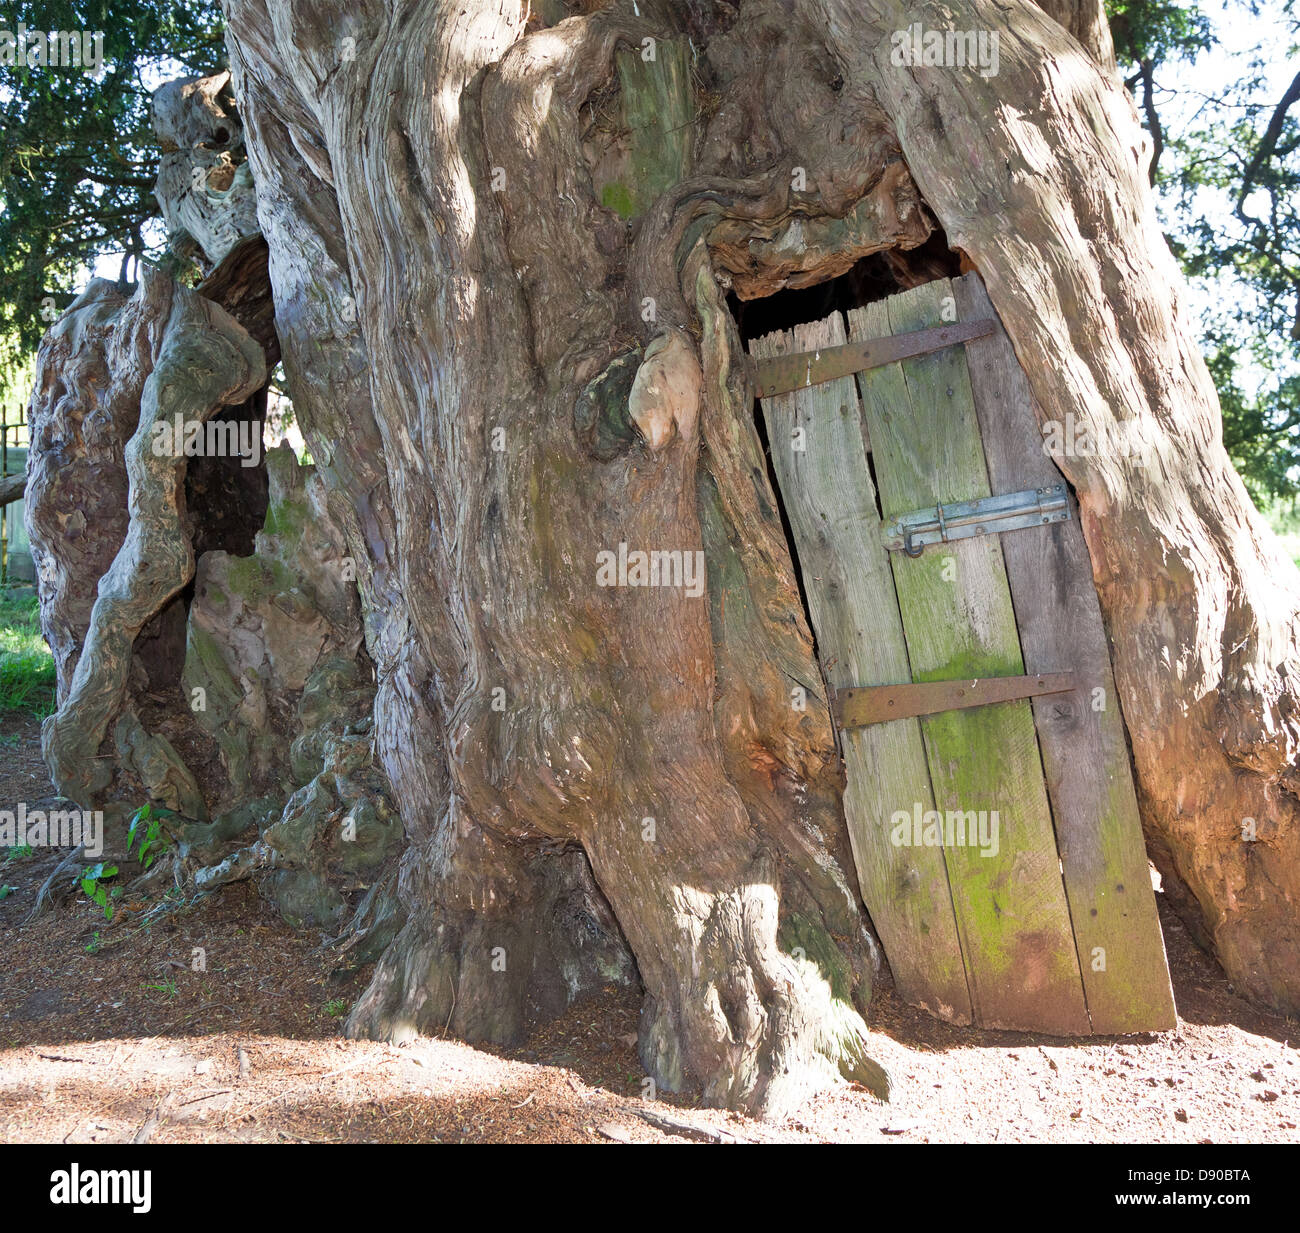 4,000 Year Old Yew Tree in St Georges Churchyard Crowhurst Surrey UK - Stock Image